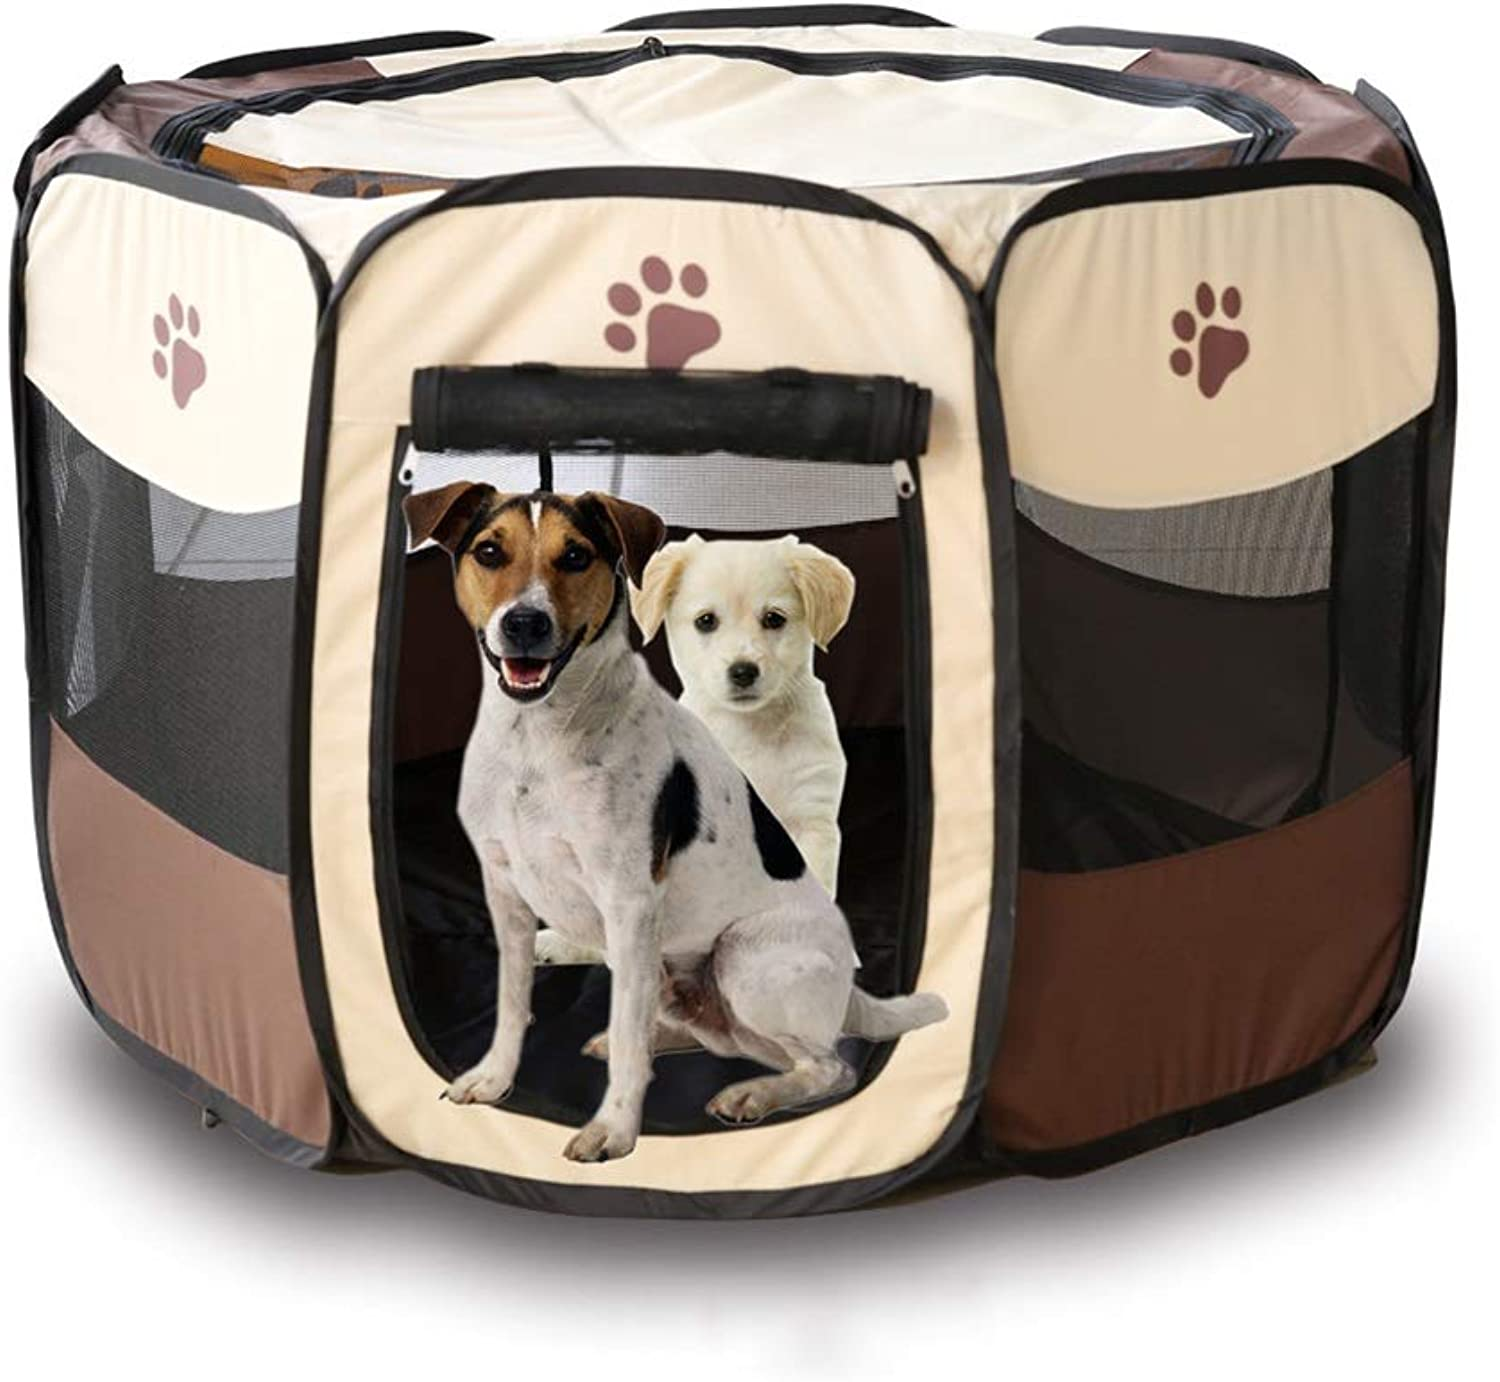 QIQI Pet Playpen Folding Dog Tent Pet Cage Portable Waterproof Pet Supplies (Size   70  70  45cm)